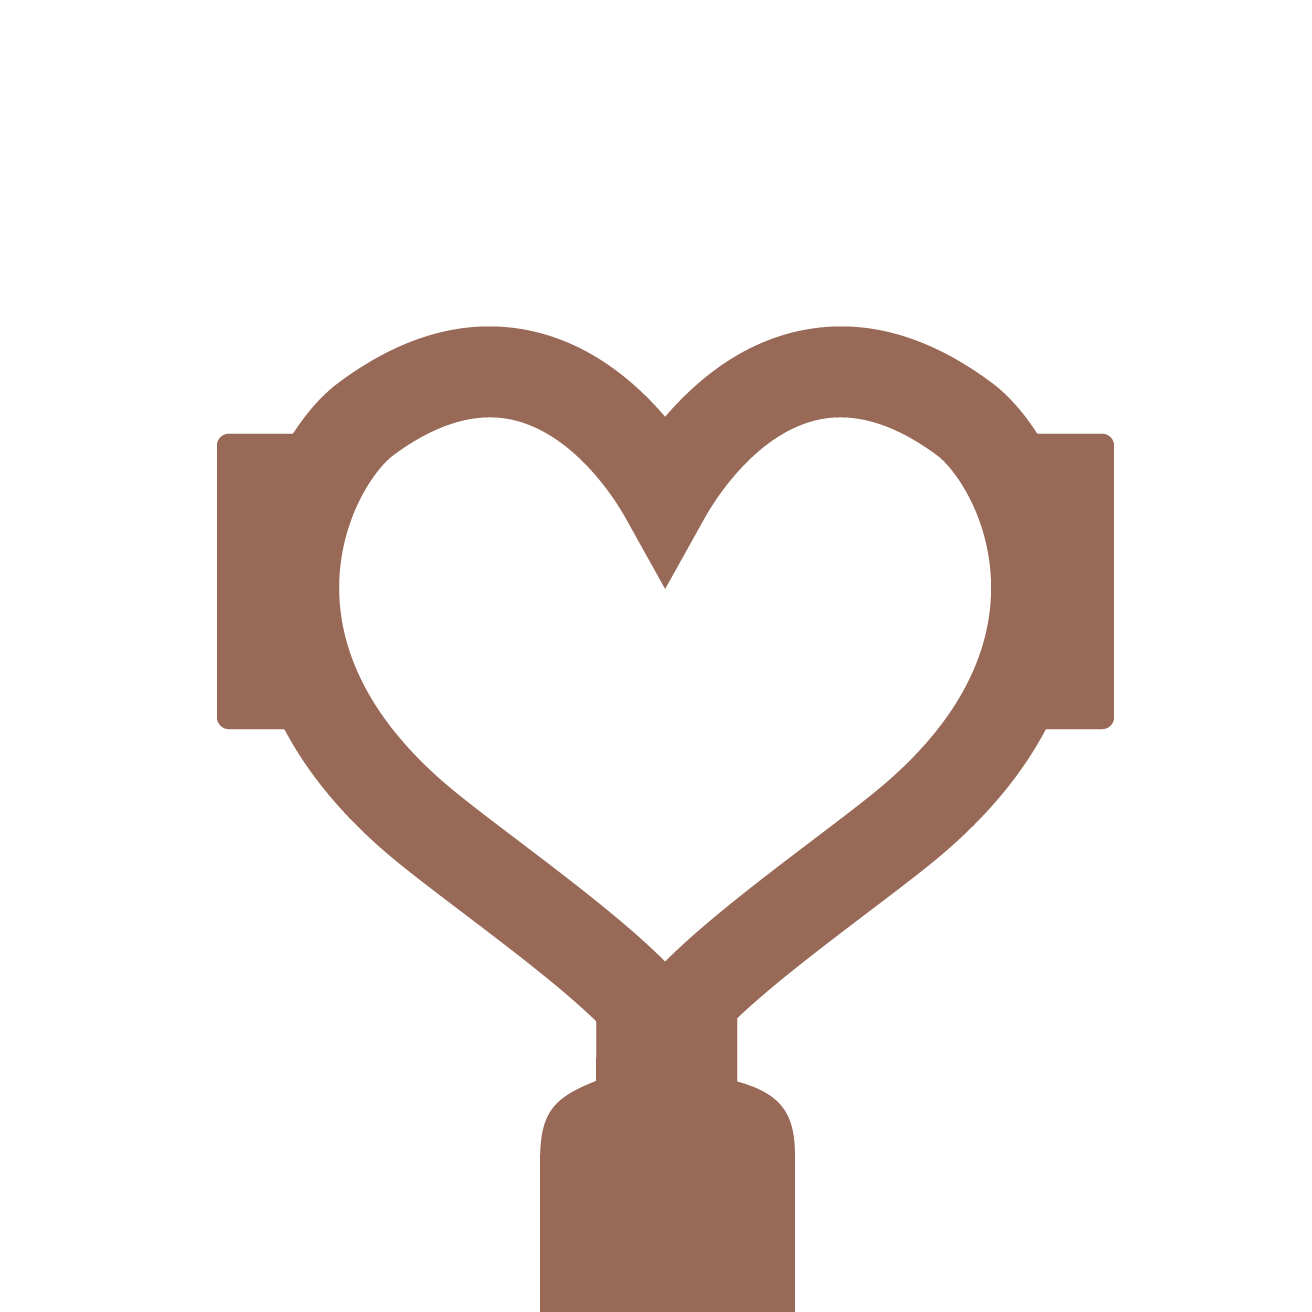 Compak 58mm Burrs - For Compak K3 Touch